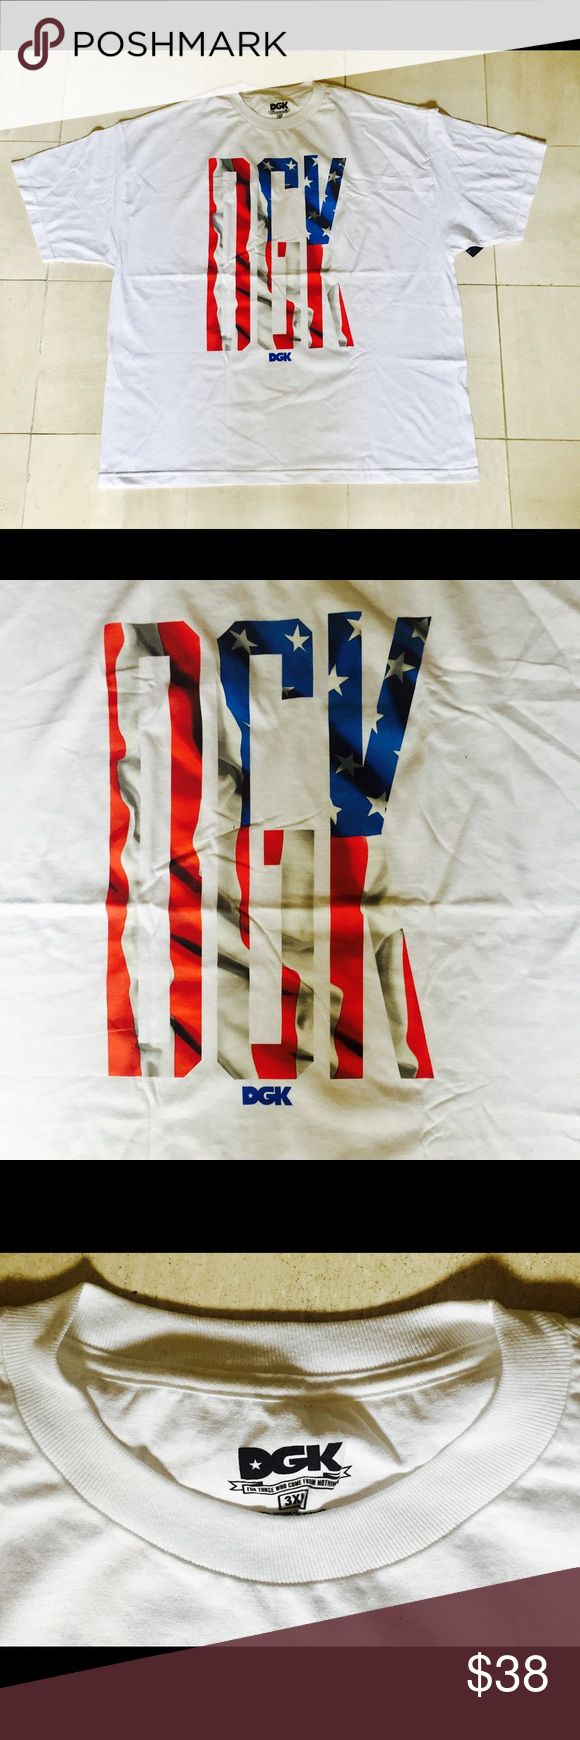 DGK Banner T-Shirt - White DGK Banner T-Shirt - White: Fly your flag and represent America with this new Banner shirt from DGK. Made from 100% Cotton, classic fit, chest print art, imported, crew neck, like-new, never worn, and tagless collar for comfort. DGK Shirts Tees - Short Sleeve